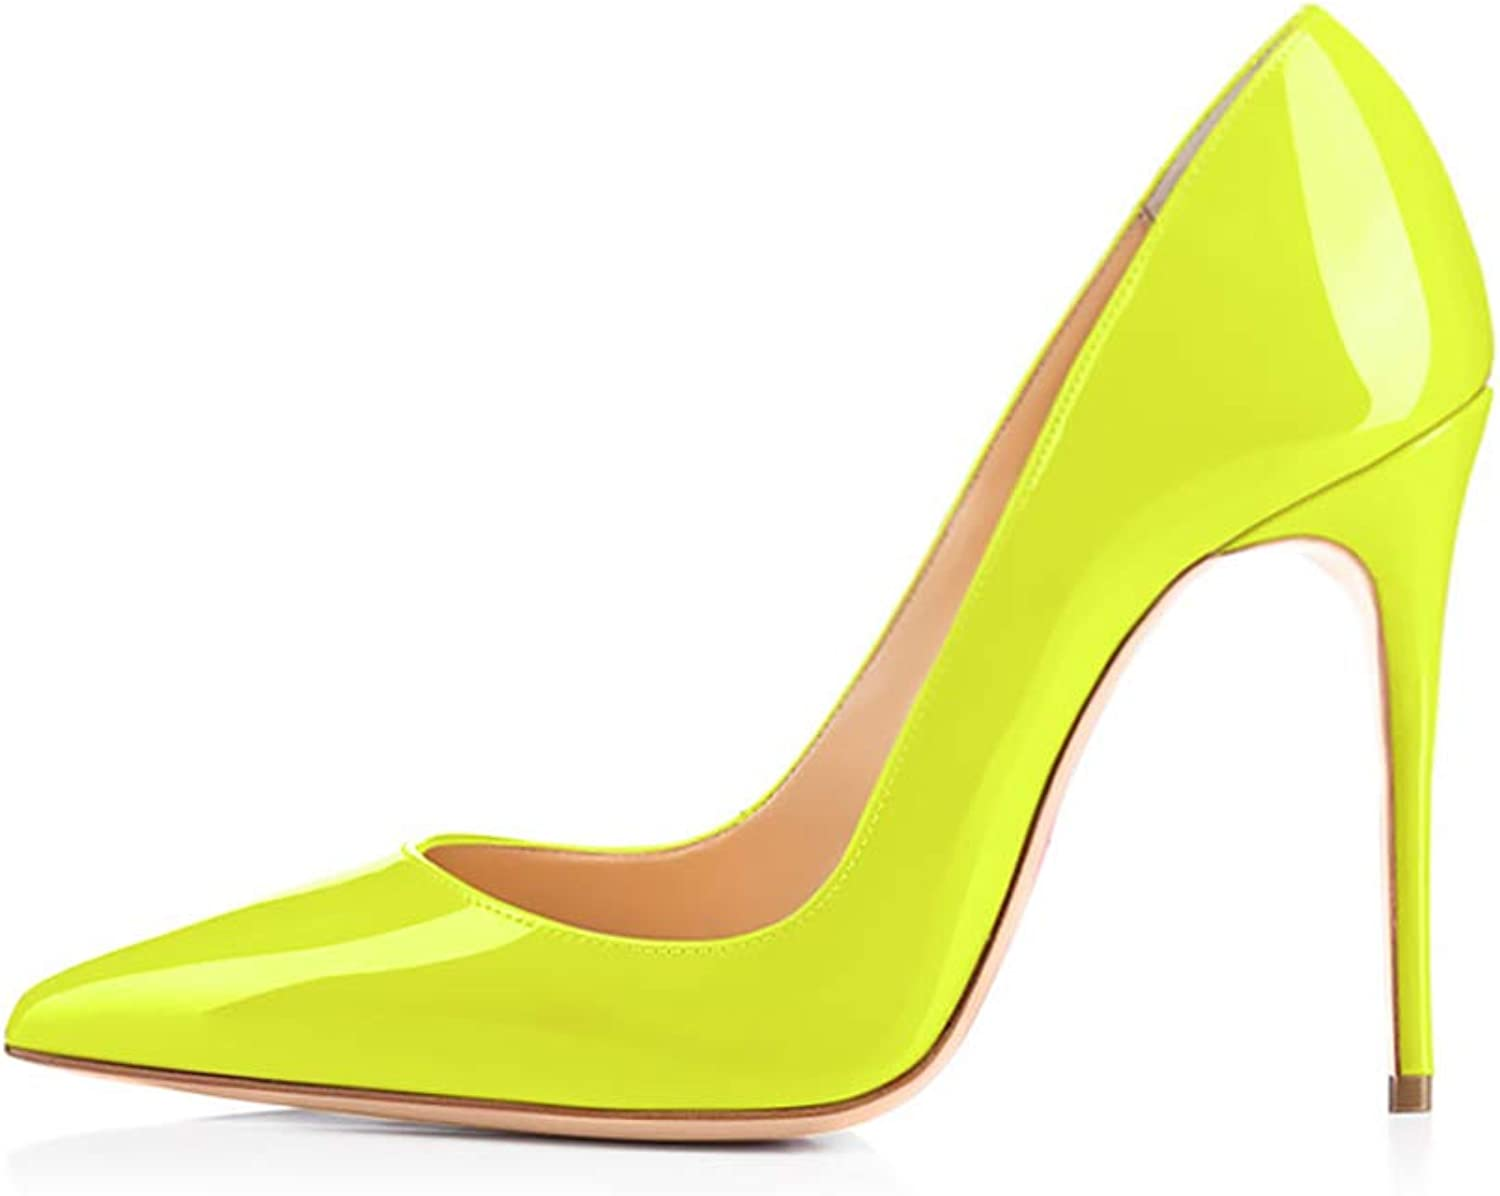 Elisabet Tang High Heels, Women Pumps shoes 3.94 inch 10cm Pointed Toe Stiletto Sexy Prom Club Heels FY 5 Neon Yellow